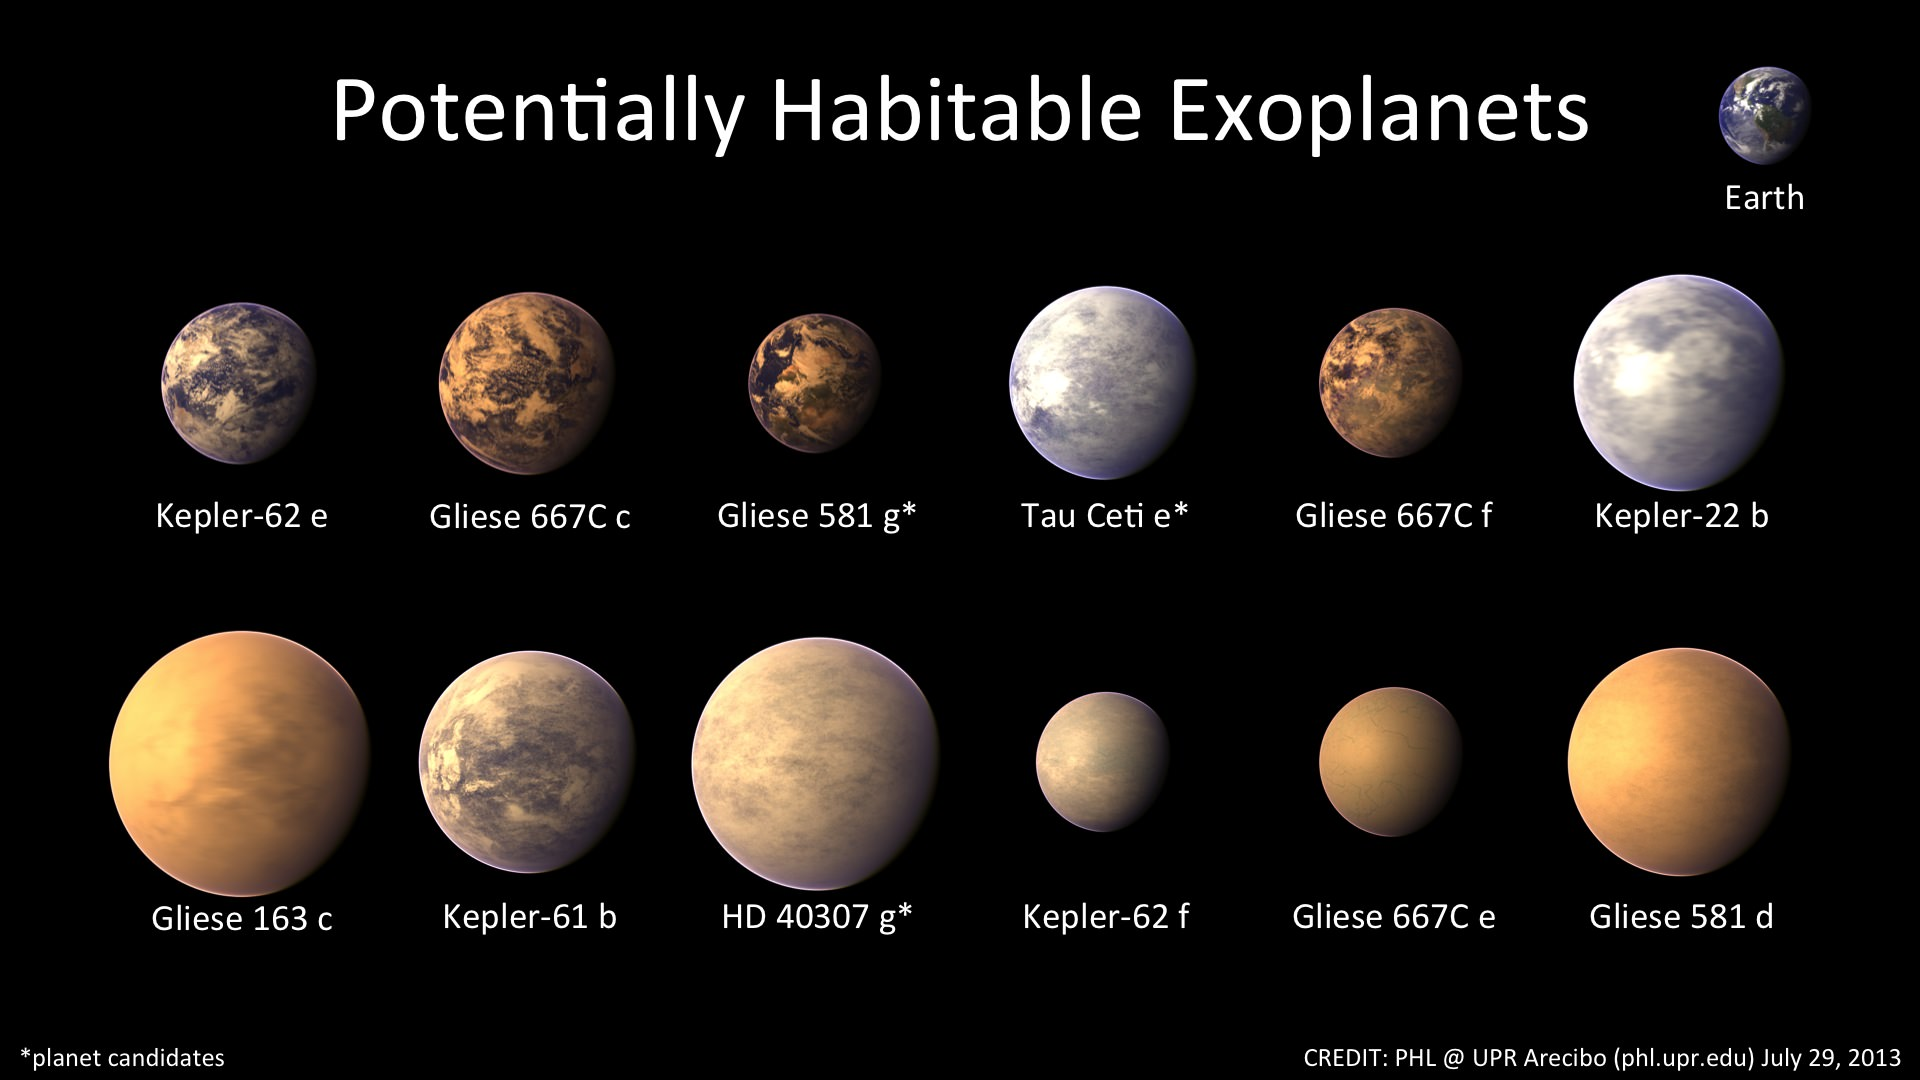 earths beyond earth little known facts about extrasolar planets Find this pin and more on new earths - trappist 1 system - 7 exoplanets earth-sized planets beyond our the first known system of seven earth-size planets.